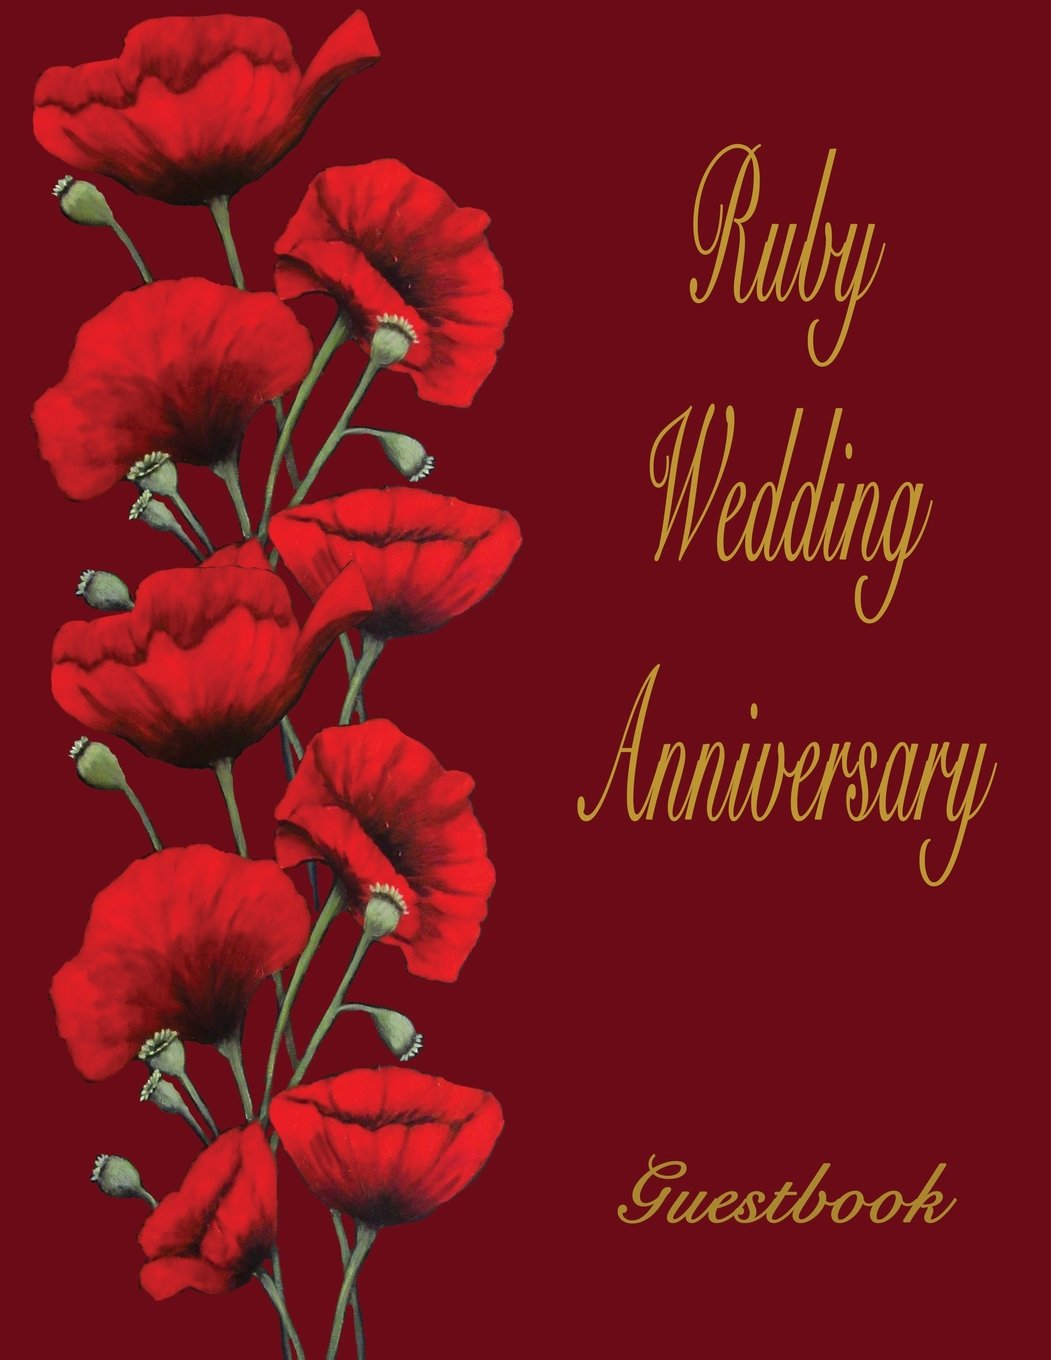 Download Ruby Wedding Anniversary Guestbook: 40th Wedding Anniversary guestbook. Soft Cover, Blue with red poppies. 110 pages, 8.5x11. Lined pages for your guests to sign and leave comments. pdf epub